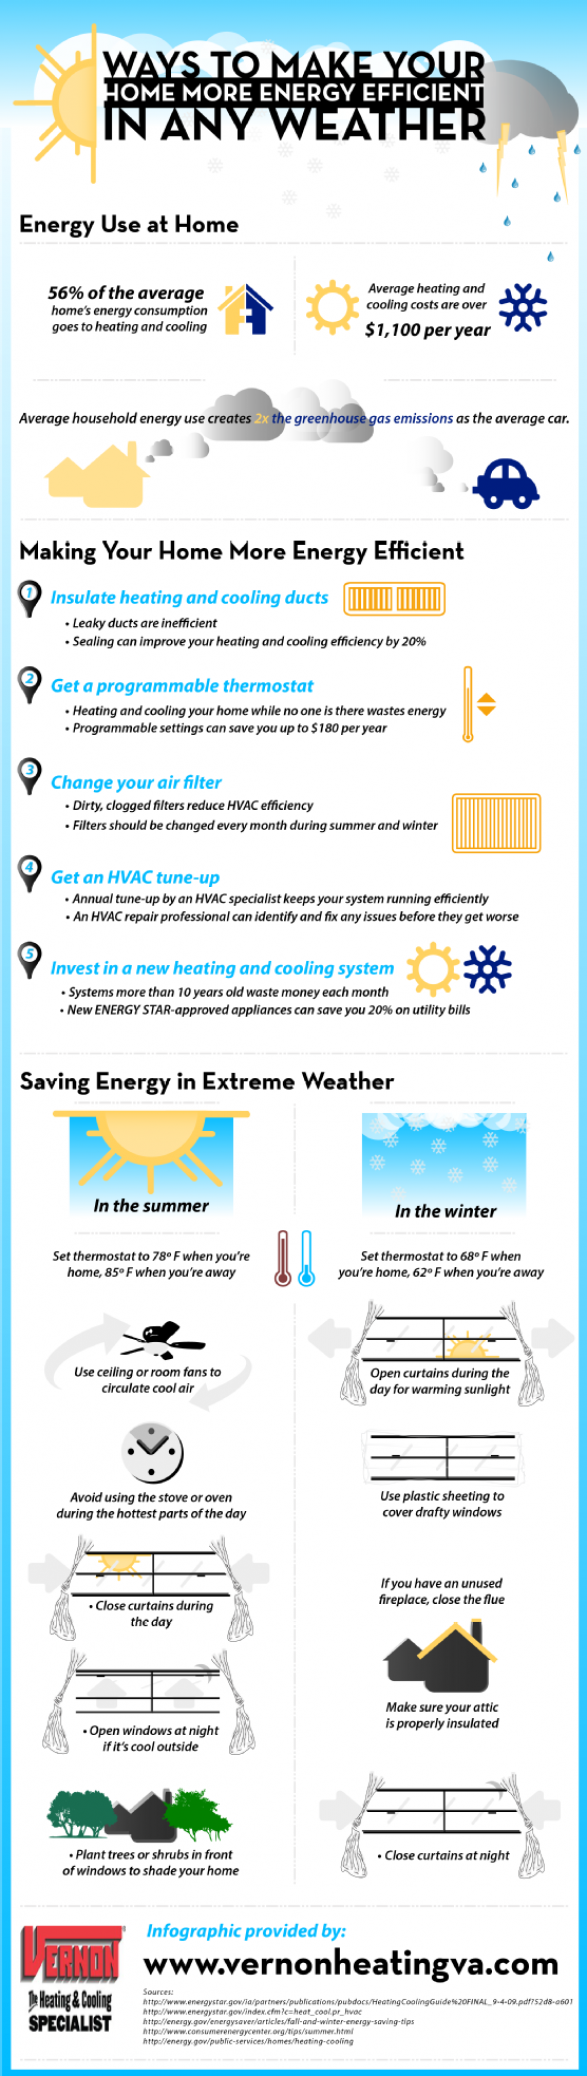 Ways to Make Your Home More Energy Efficient in Any Weather